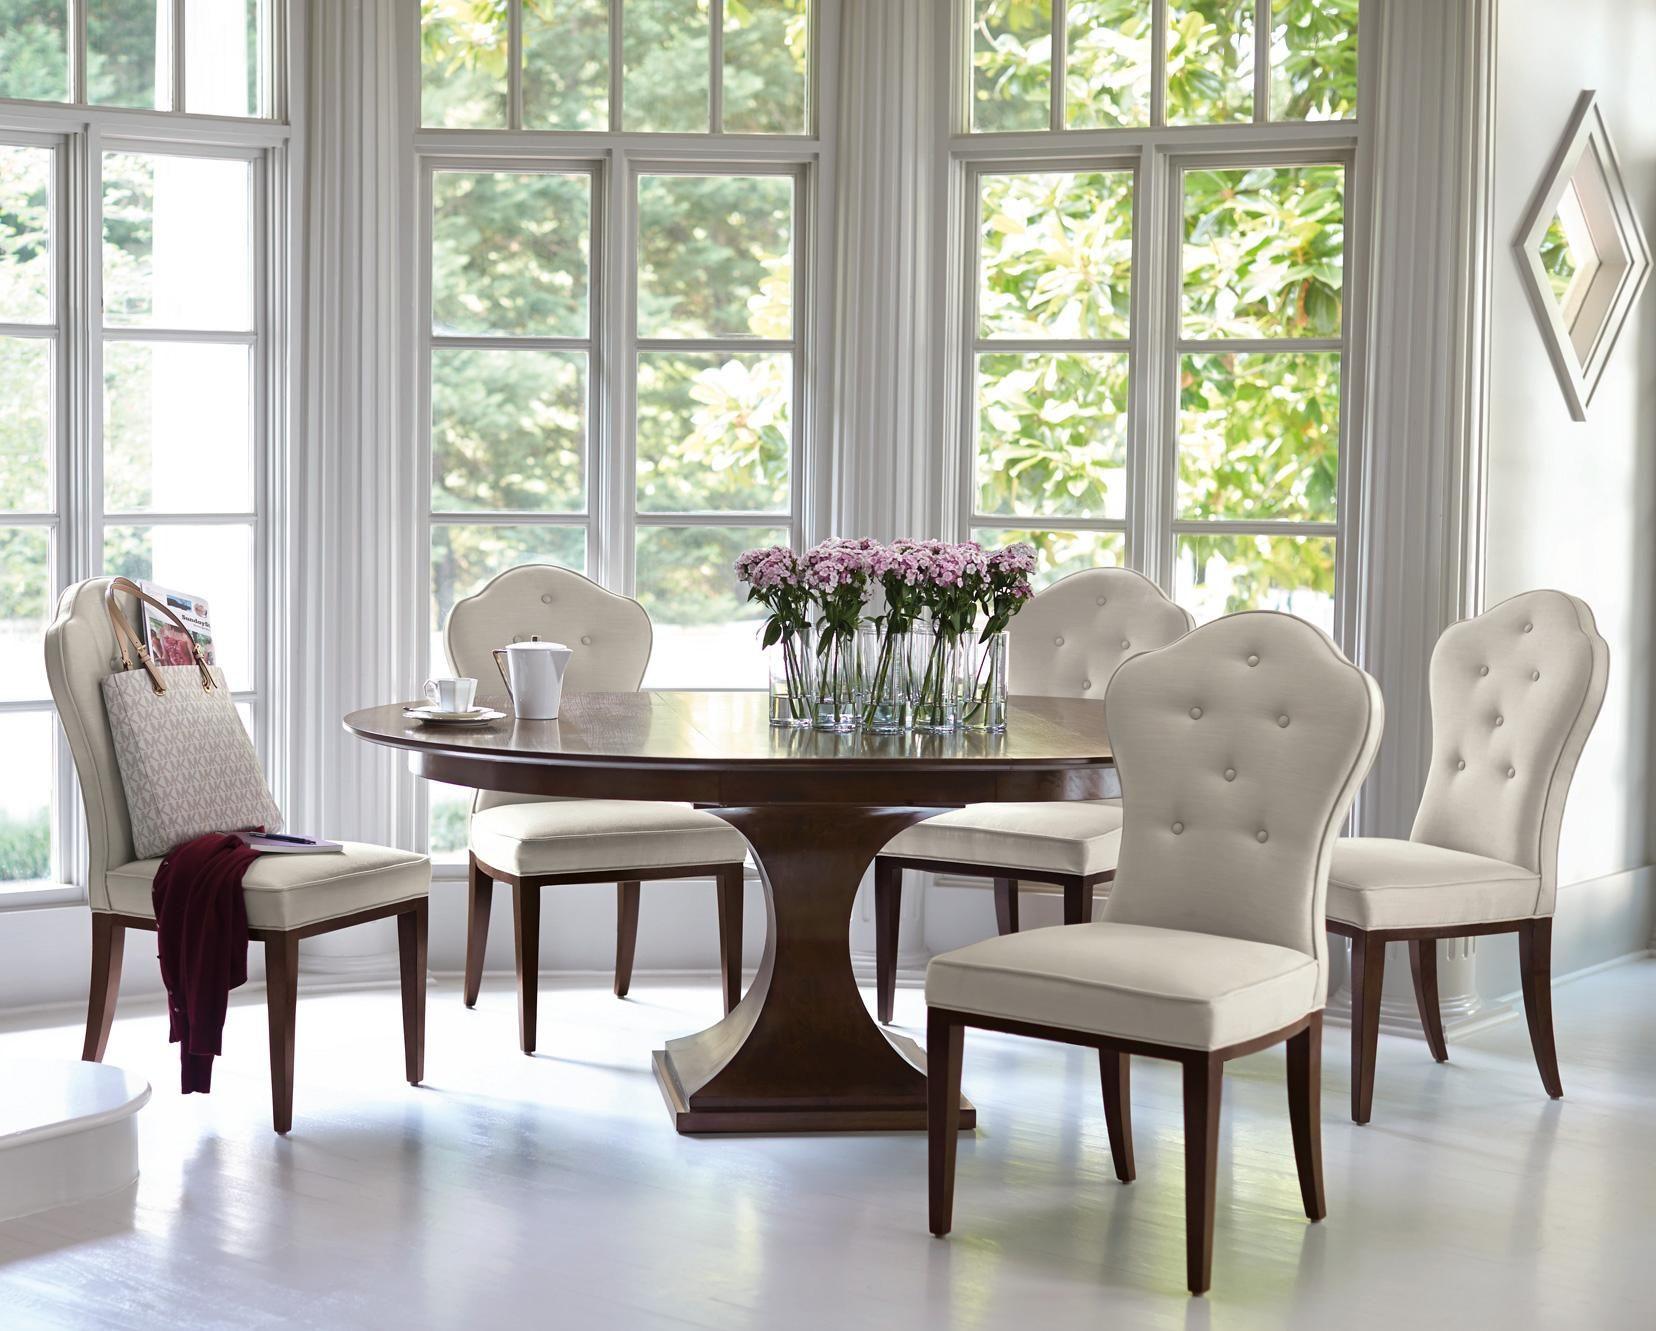 Six Piece Table And Chair Set Features A Single Pedestal And Extraordinary Single Dining Room Chair Design Ideas